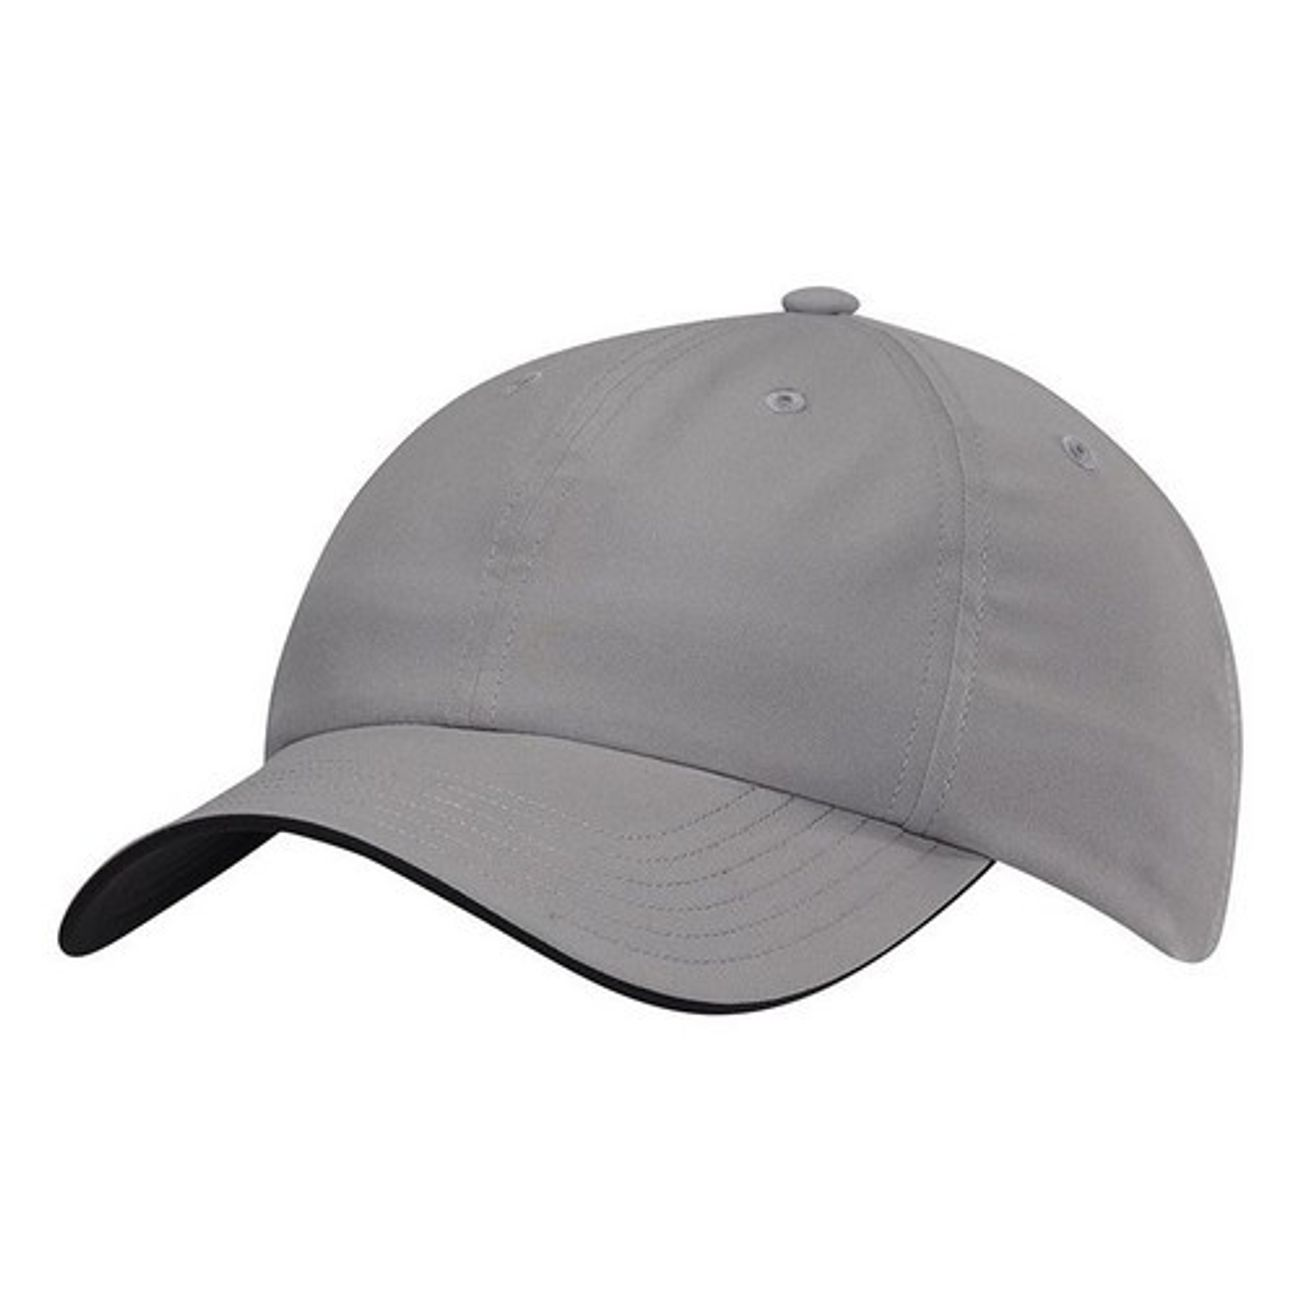 Adulte Performance Mixte Adidas Casquette ModeLifestyle rtdshQ